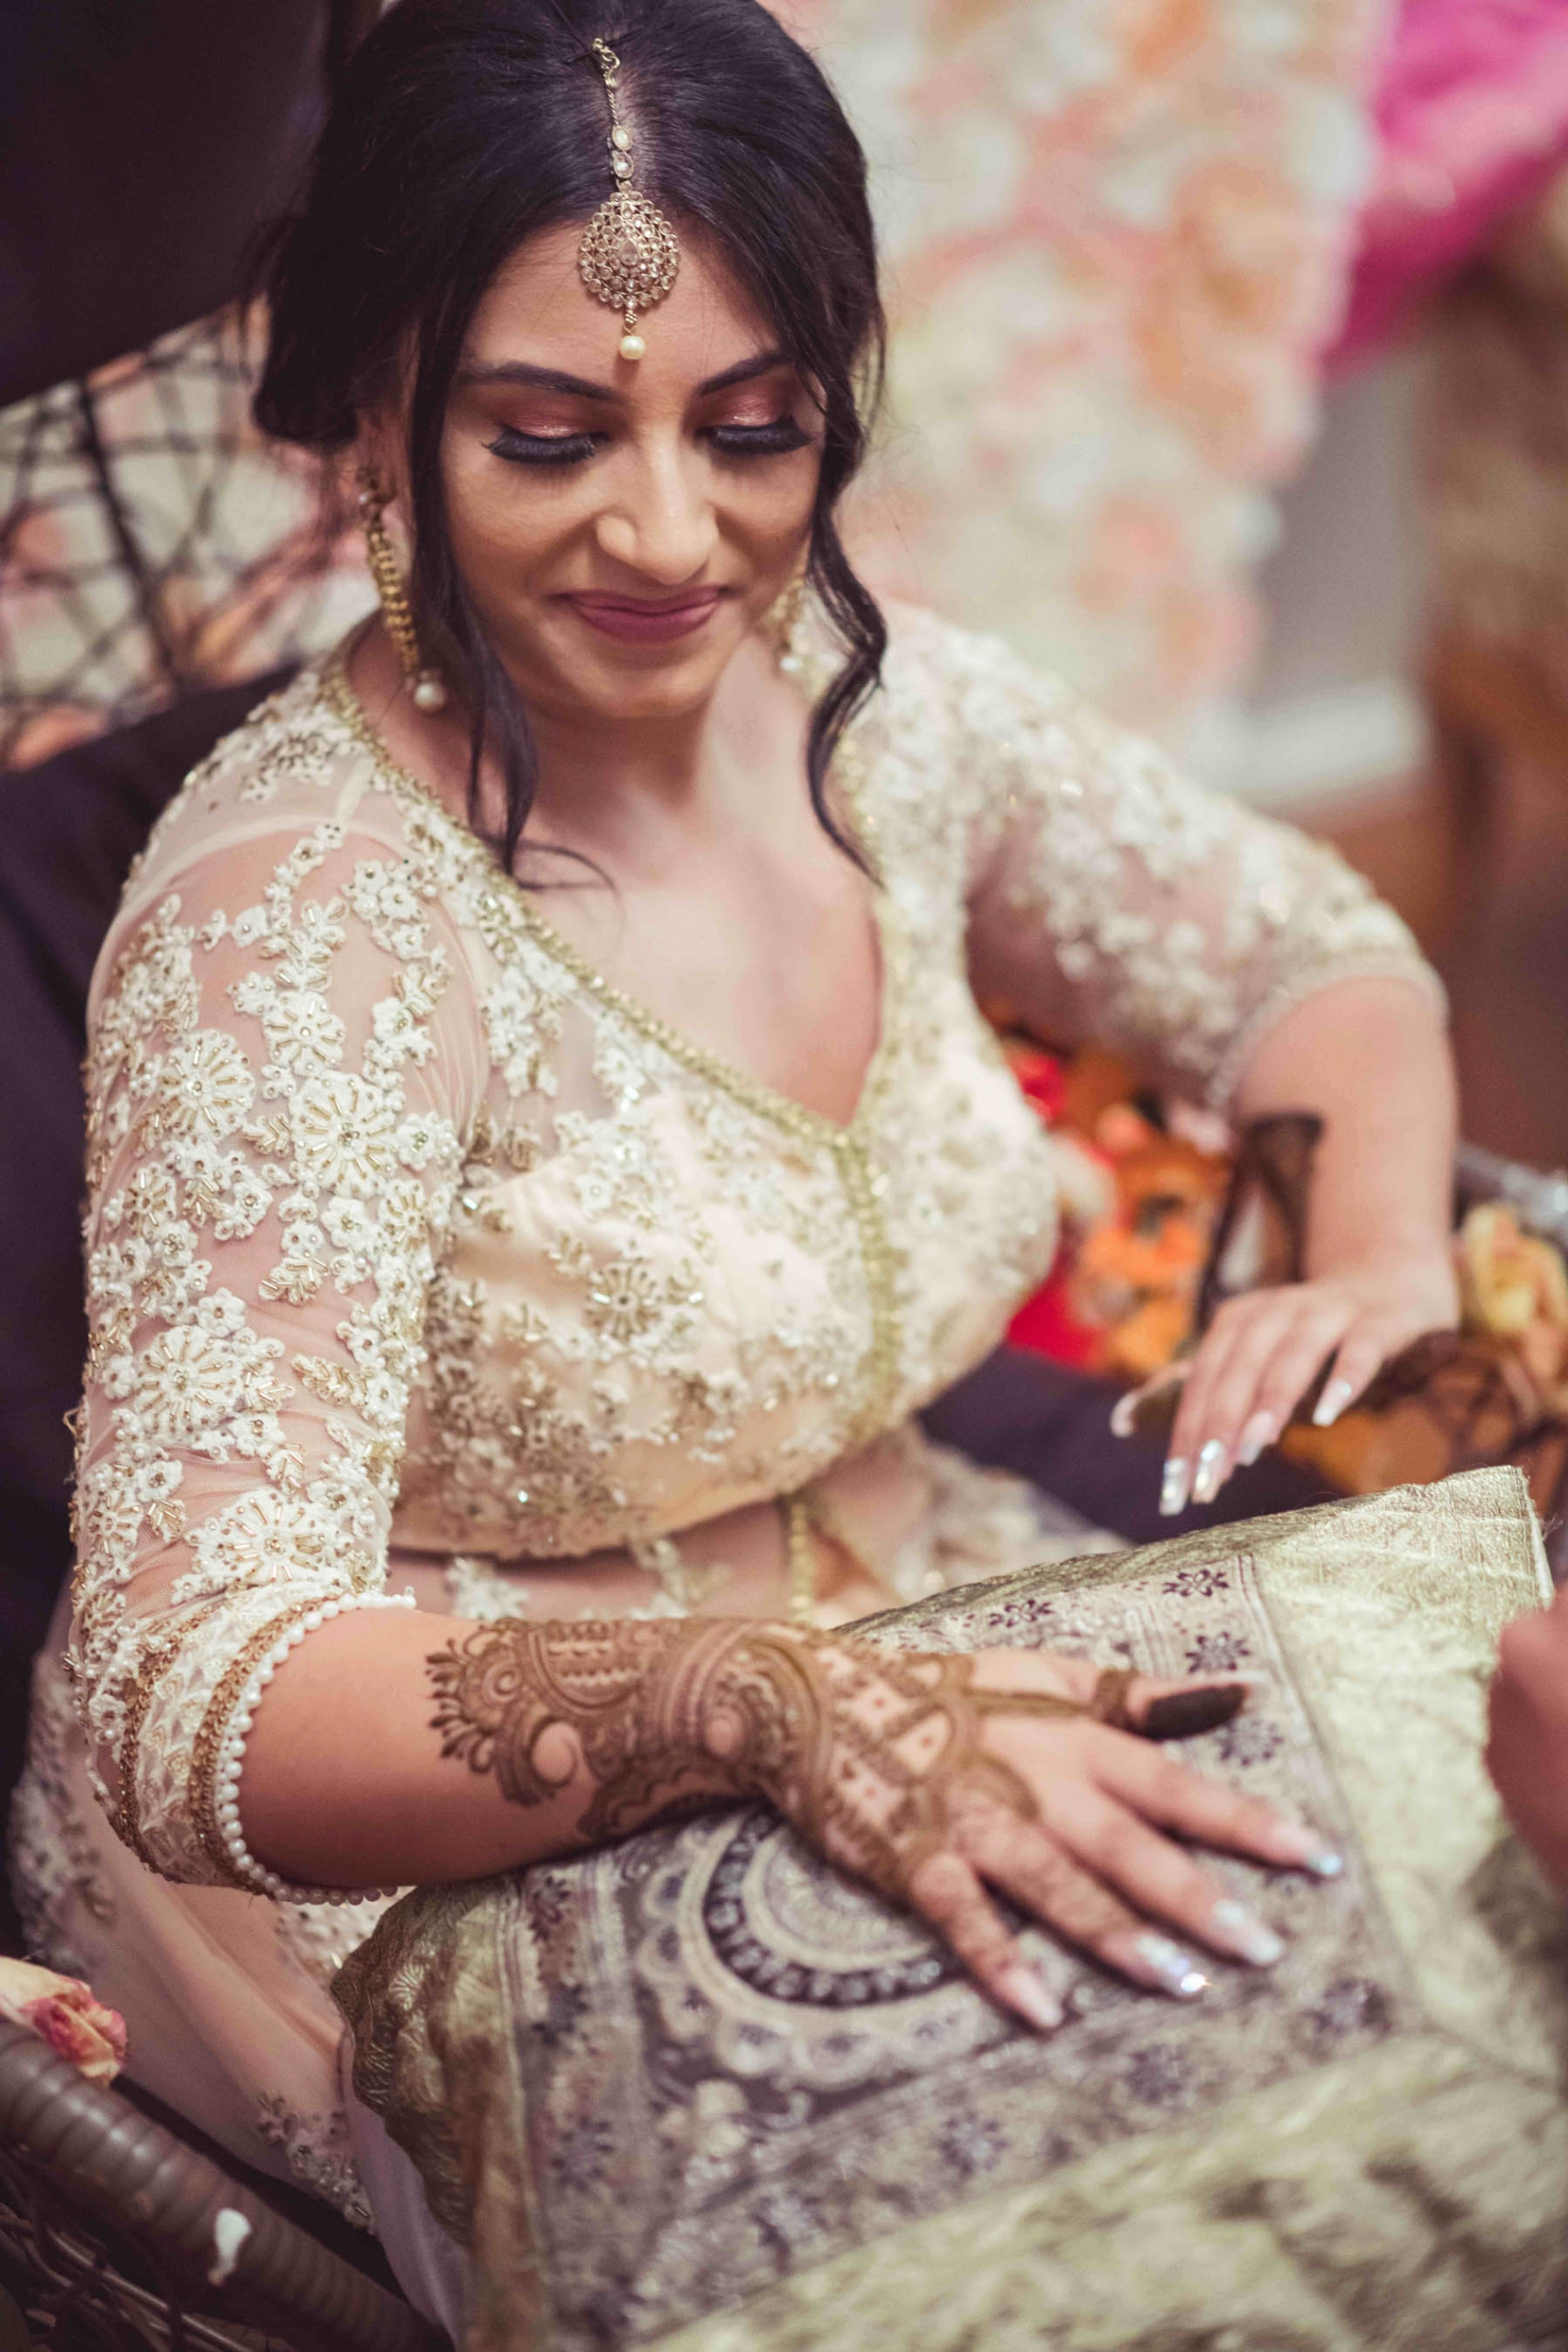 Melbourne bride, Kanika during her mehndi party.